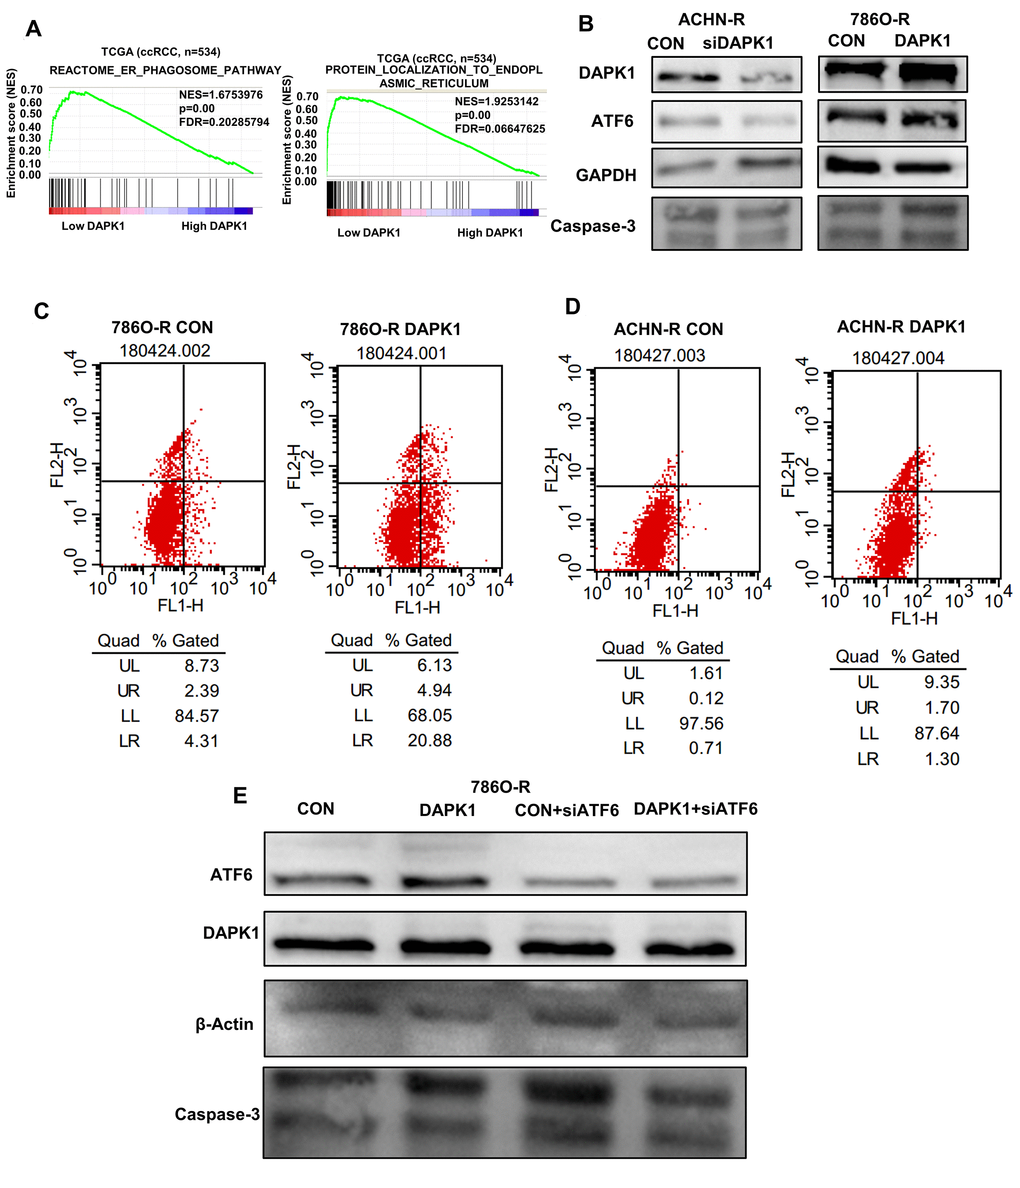 DAPK1 regulates endoplasmic reticulum stress-mediated apoptosis. (A) GSEA shows that DAPK1 expression correlates with reactome